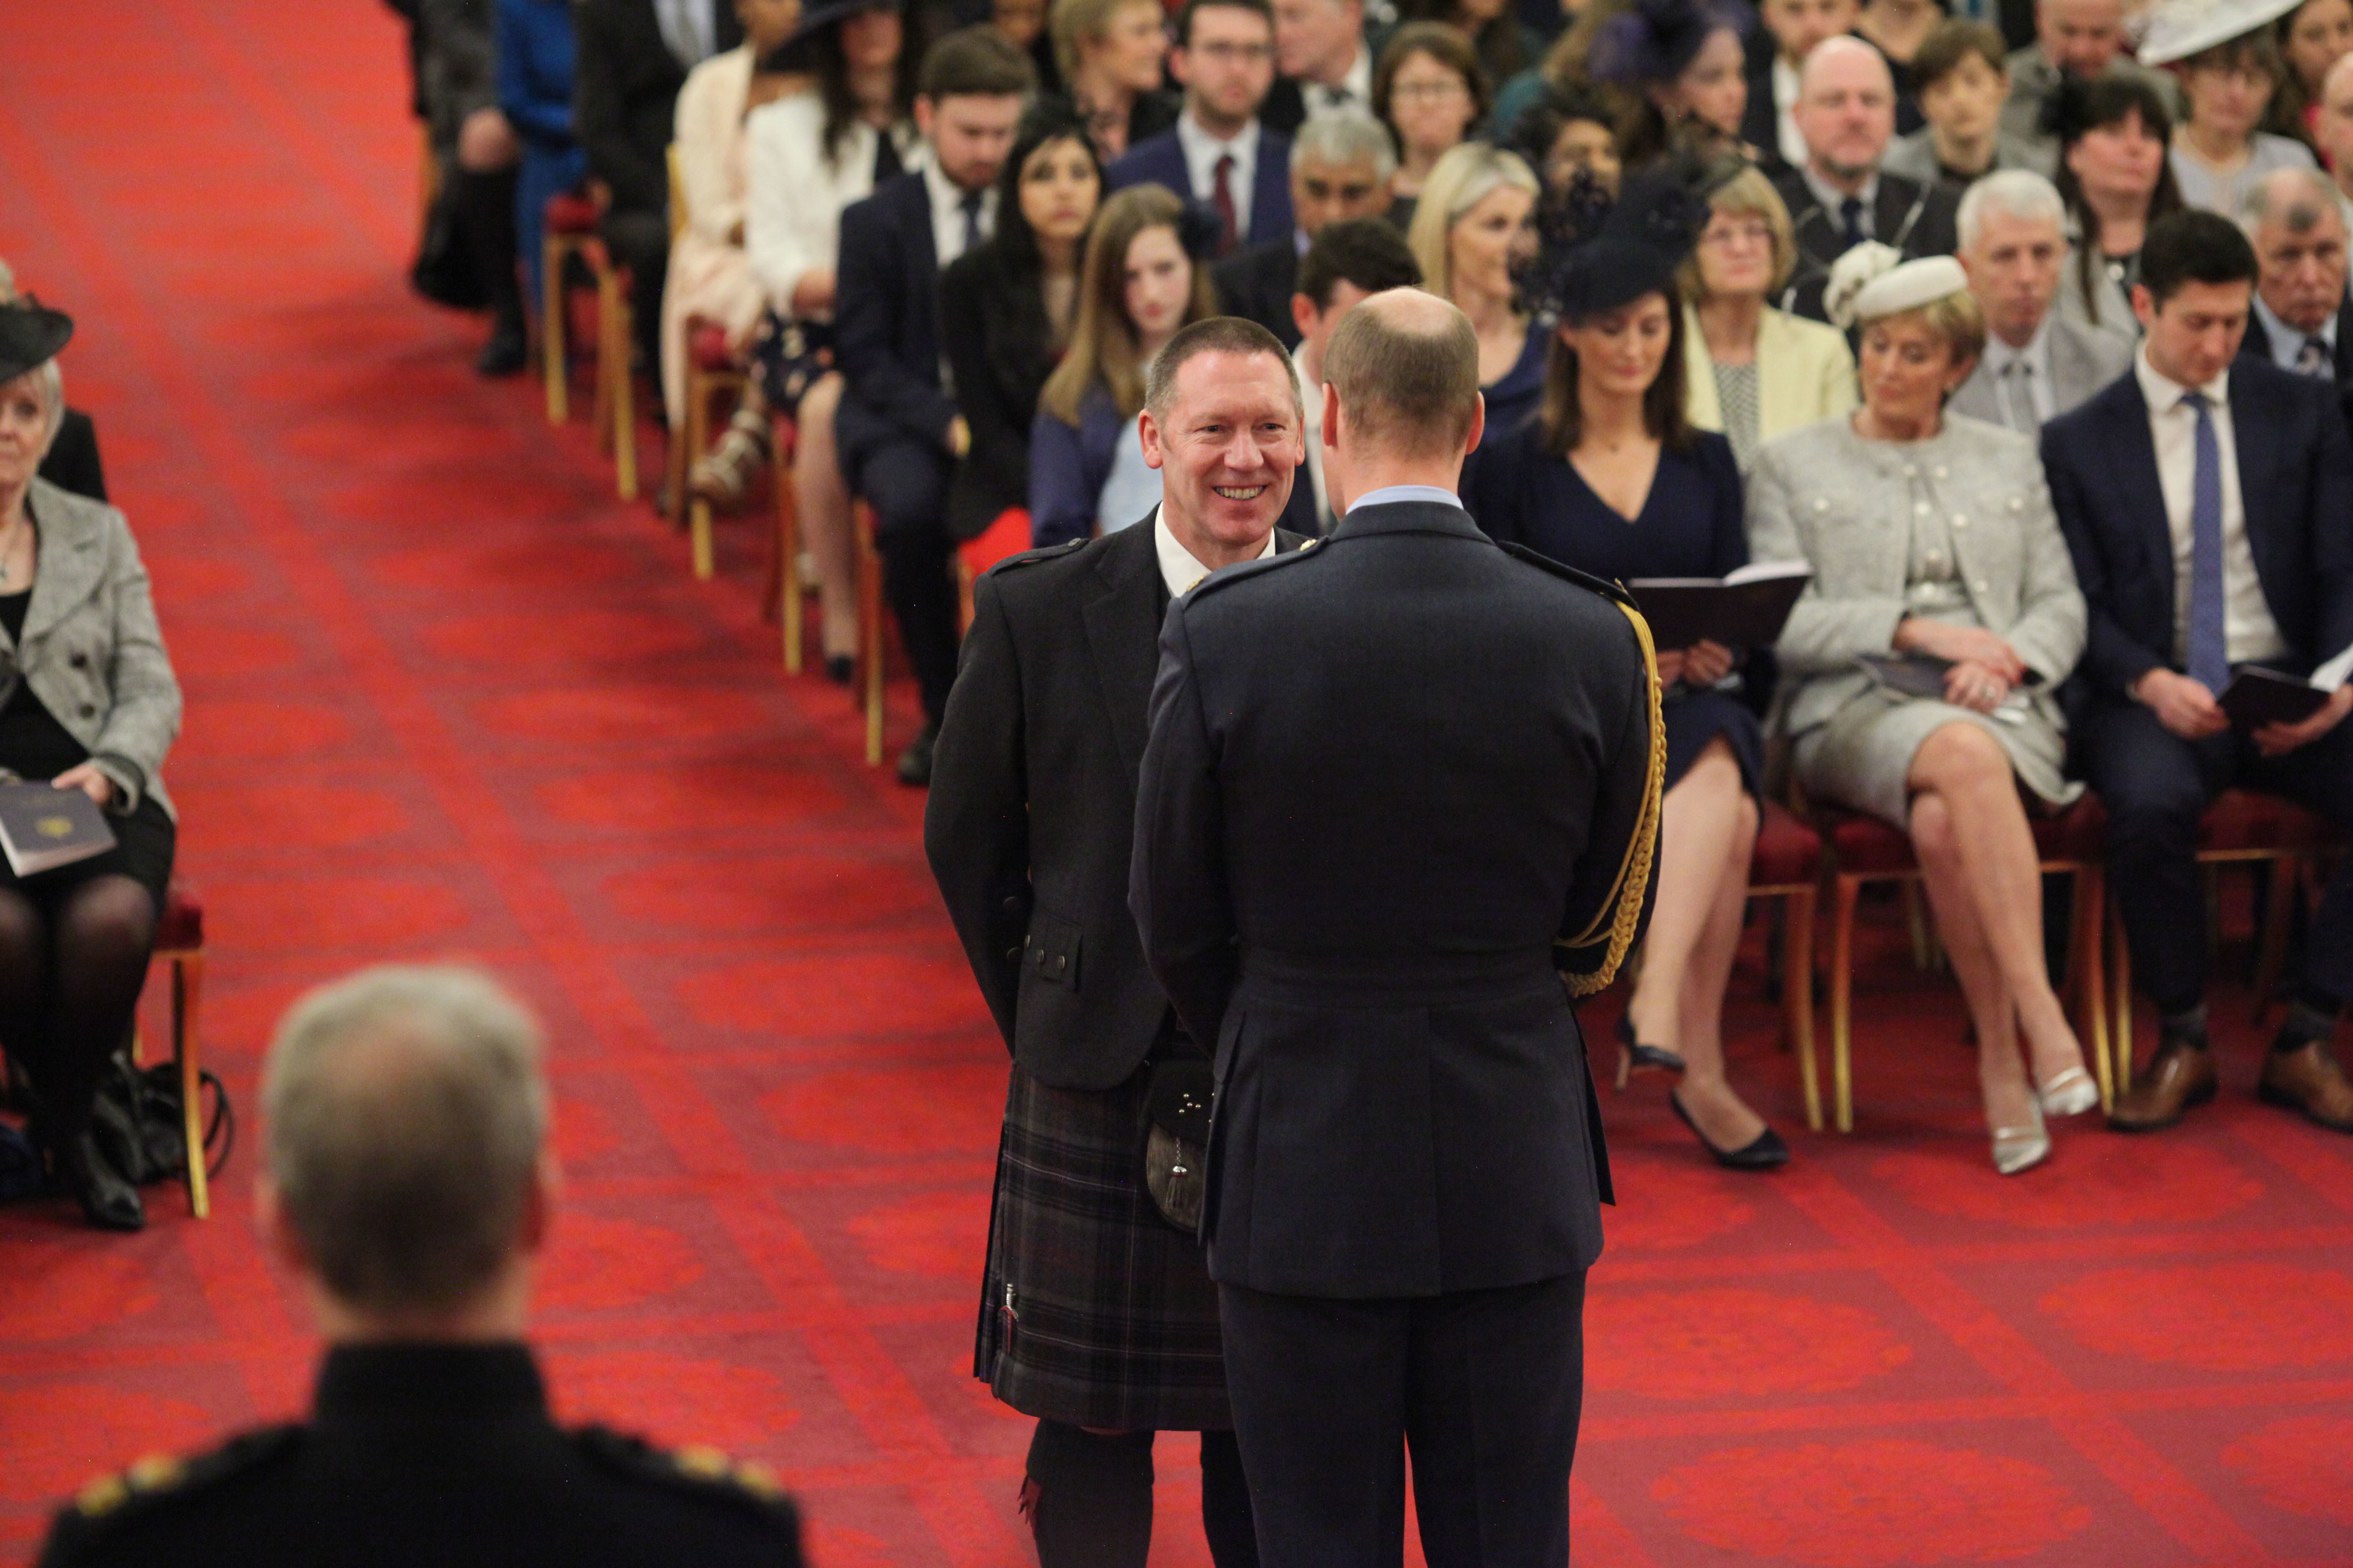 Area Manager David Rout from Ellon is decorated with the Queen's Fire Service Medal by the Duke of Cambridge